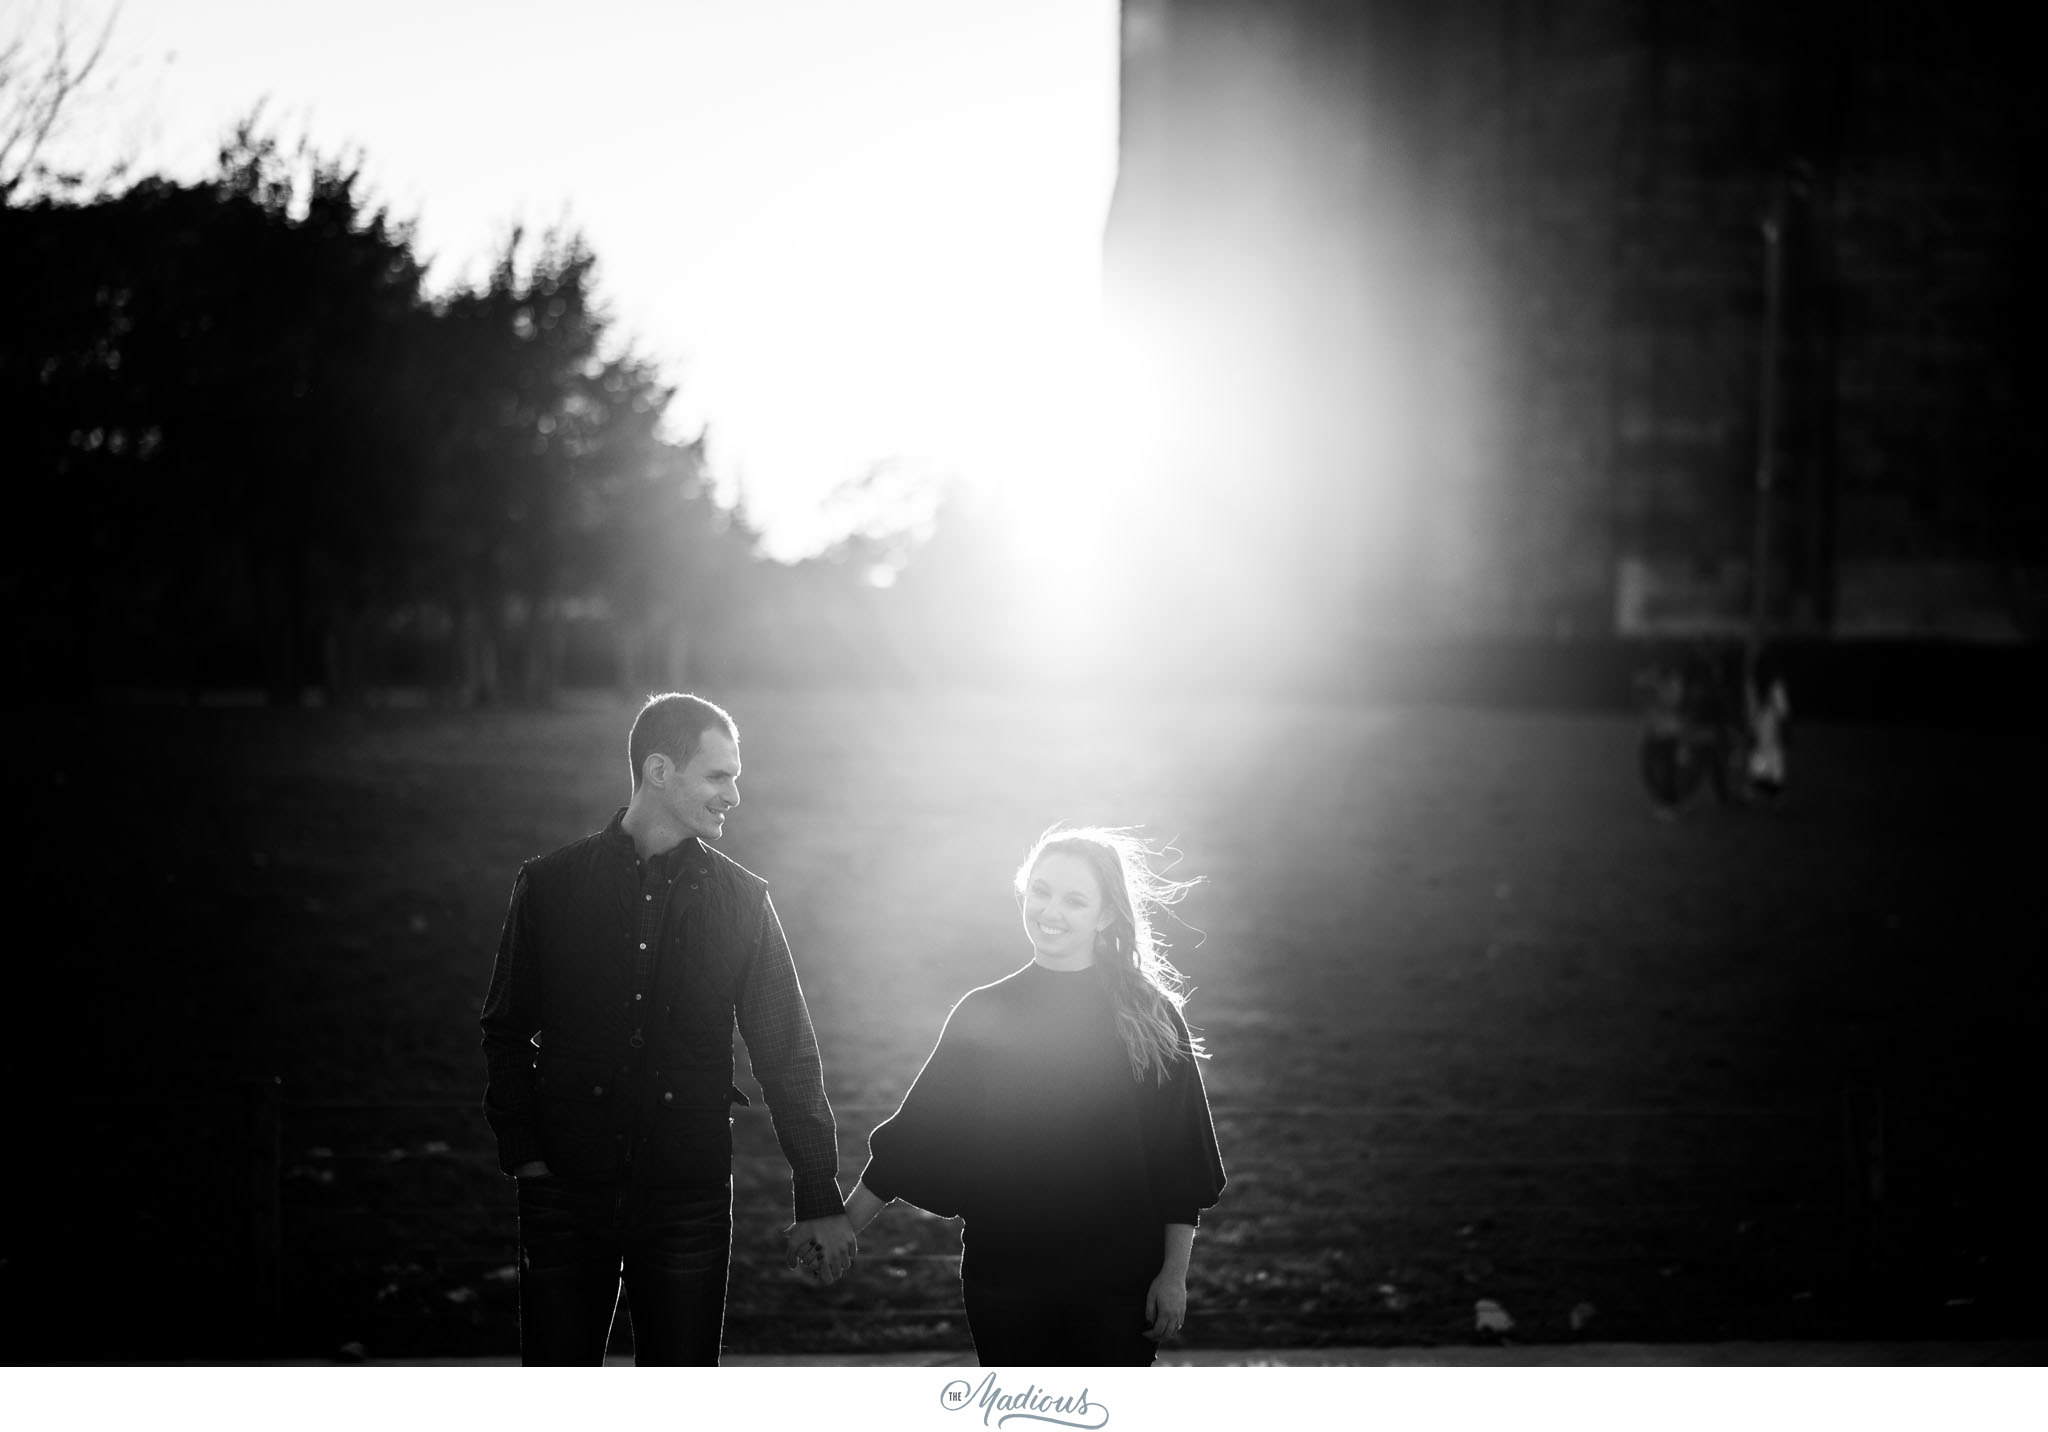 dumbo janes carousel new york engagement session 15.JPG